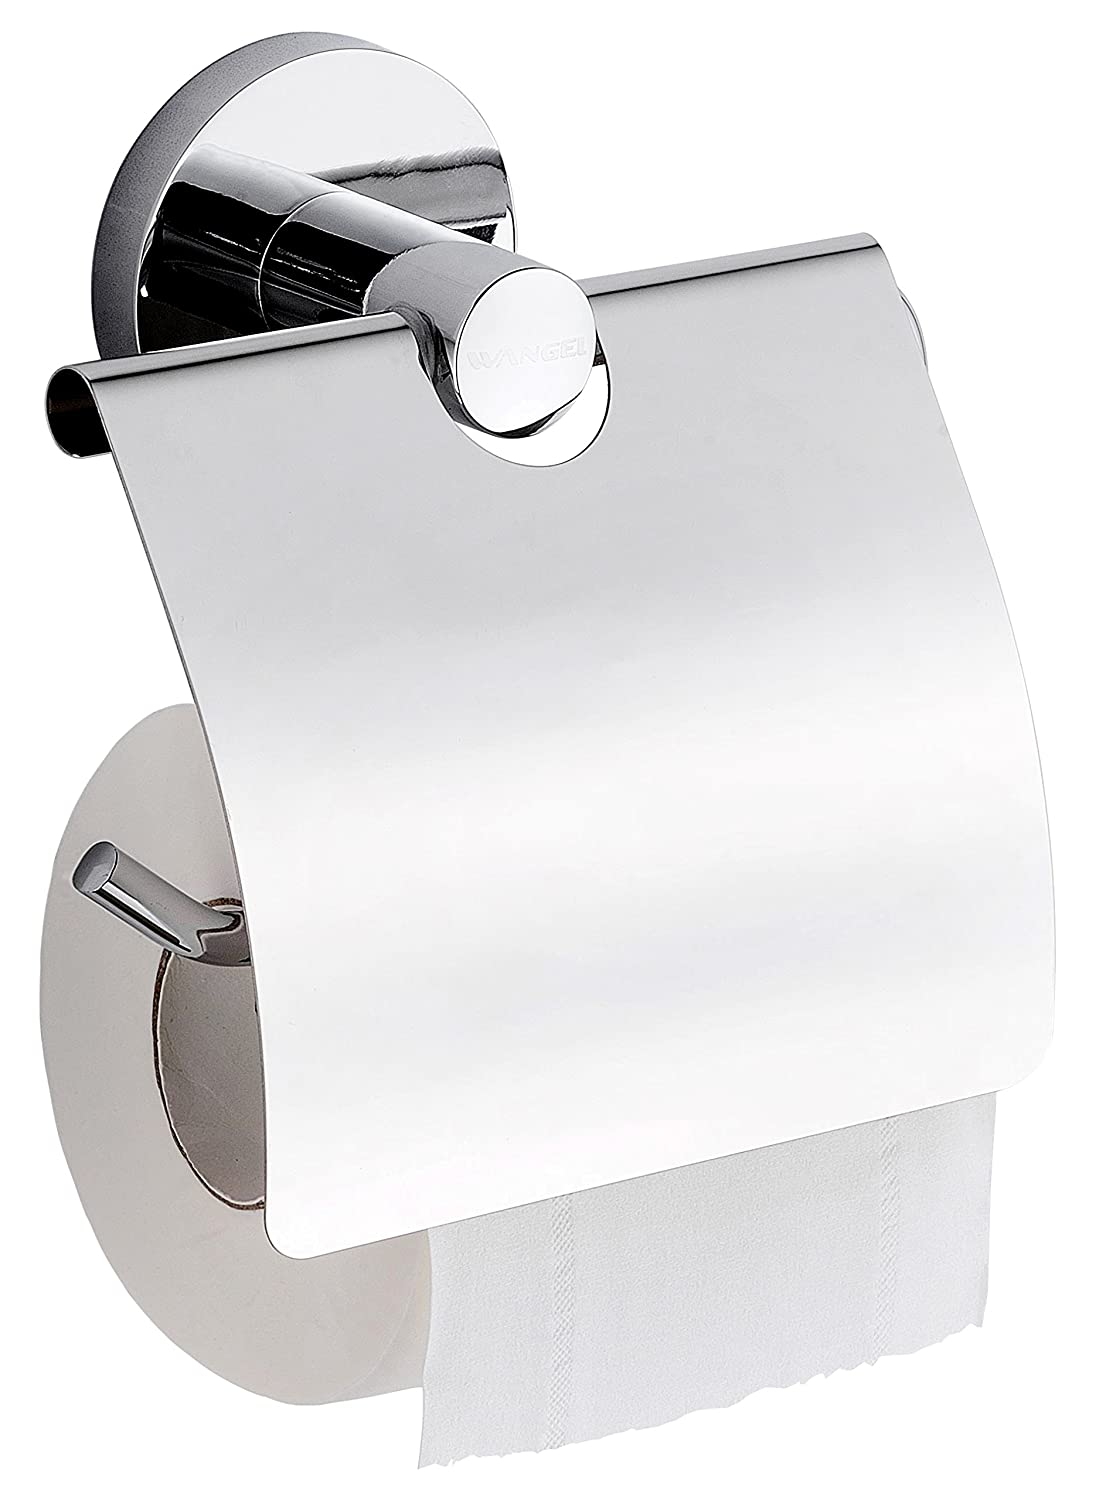 85%OFF Wangel Strong Adhesive Toilet Paper Holder, Patented Glue + ...